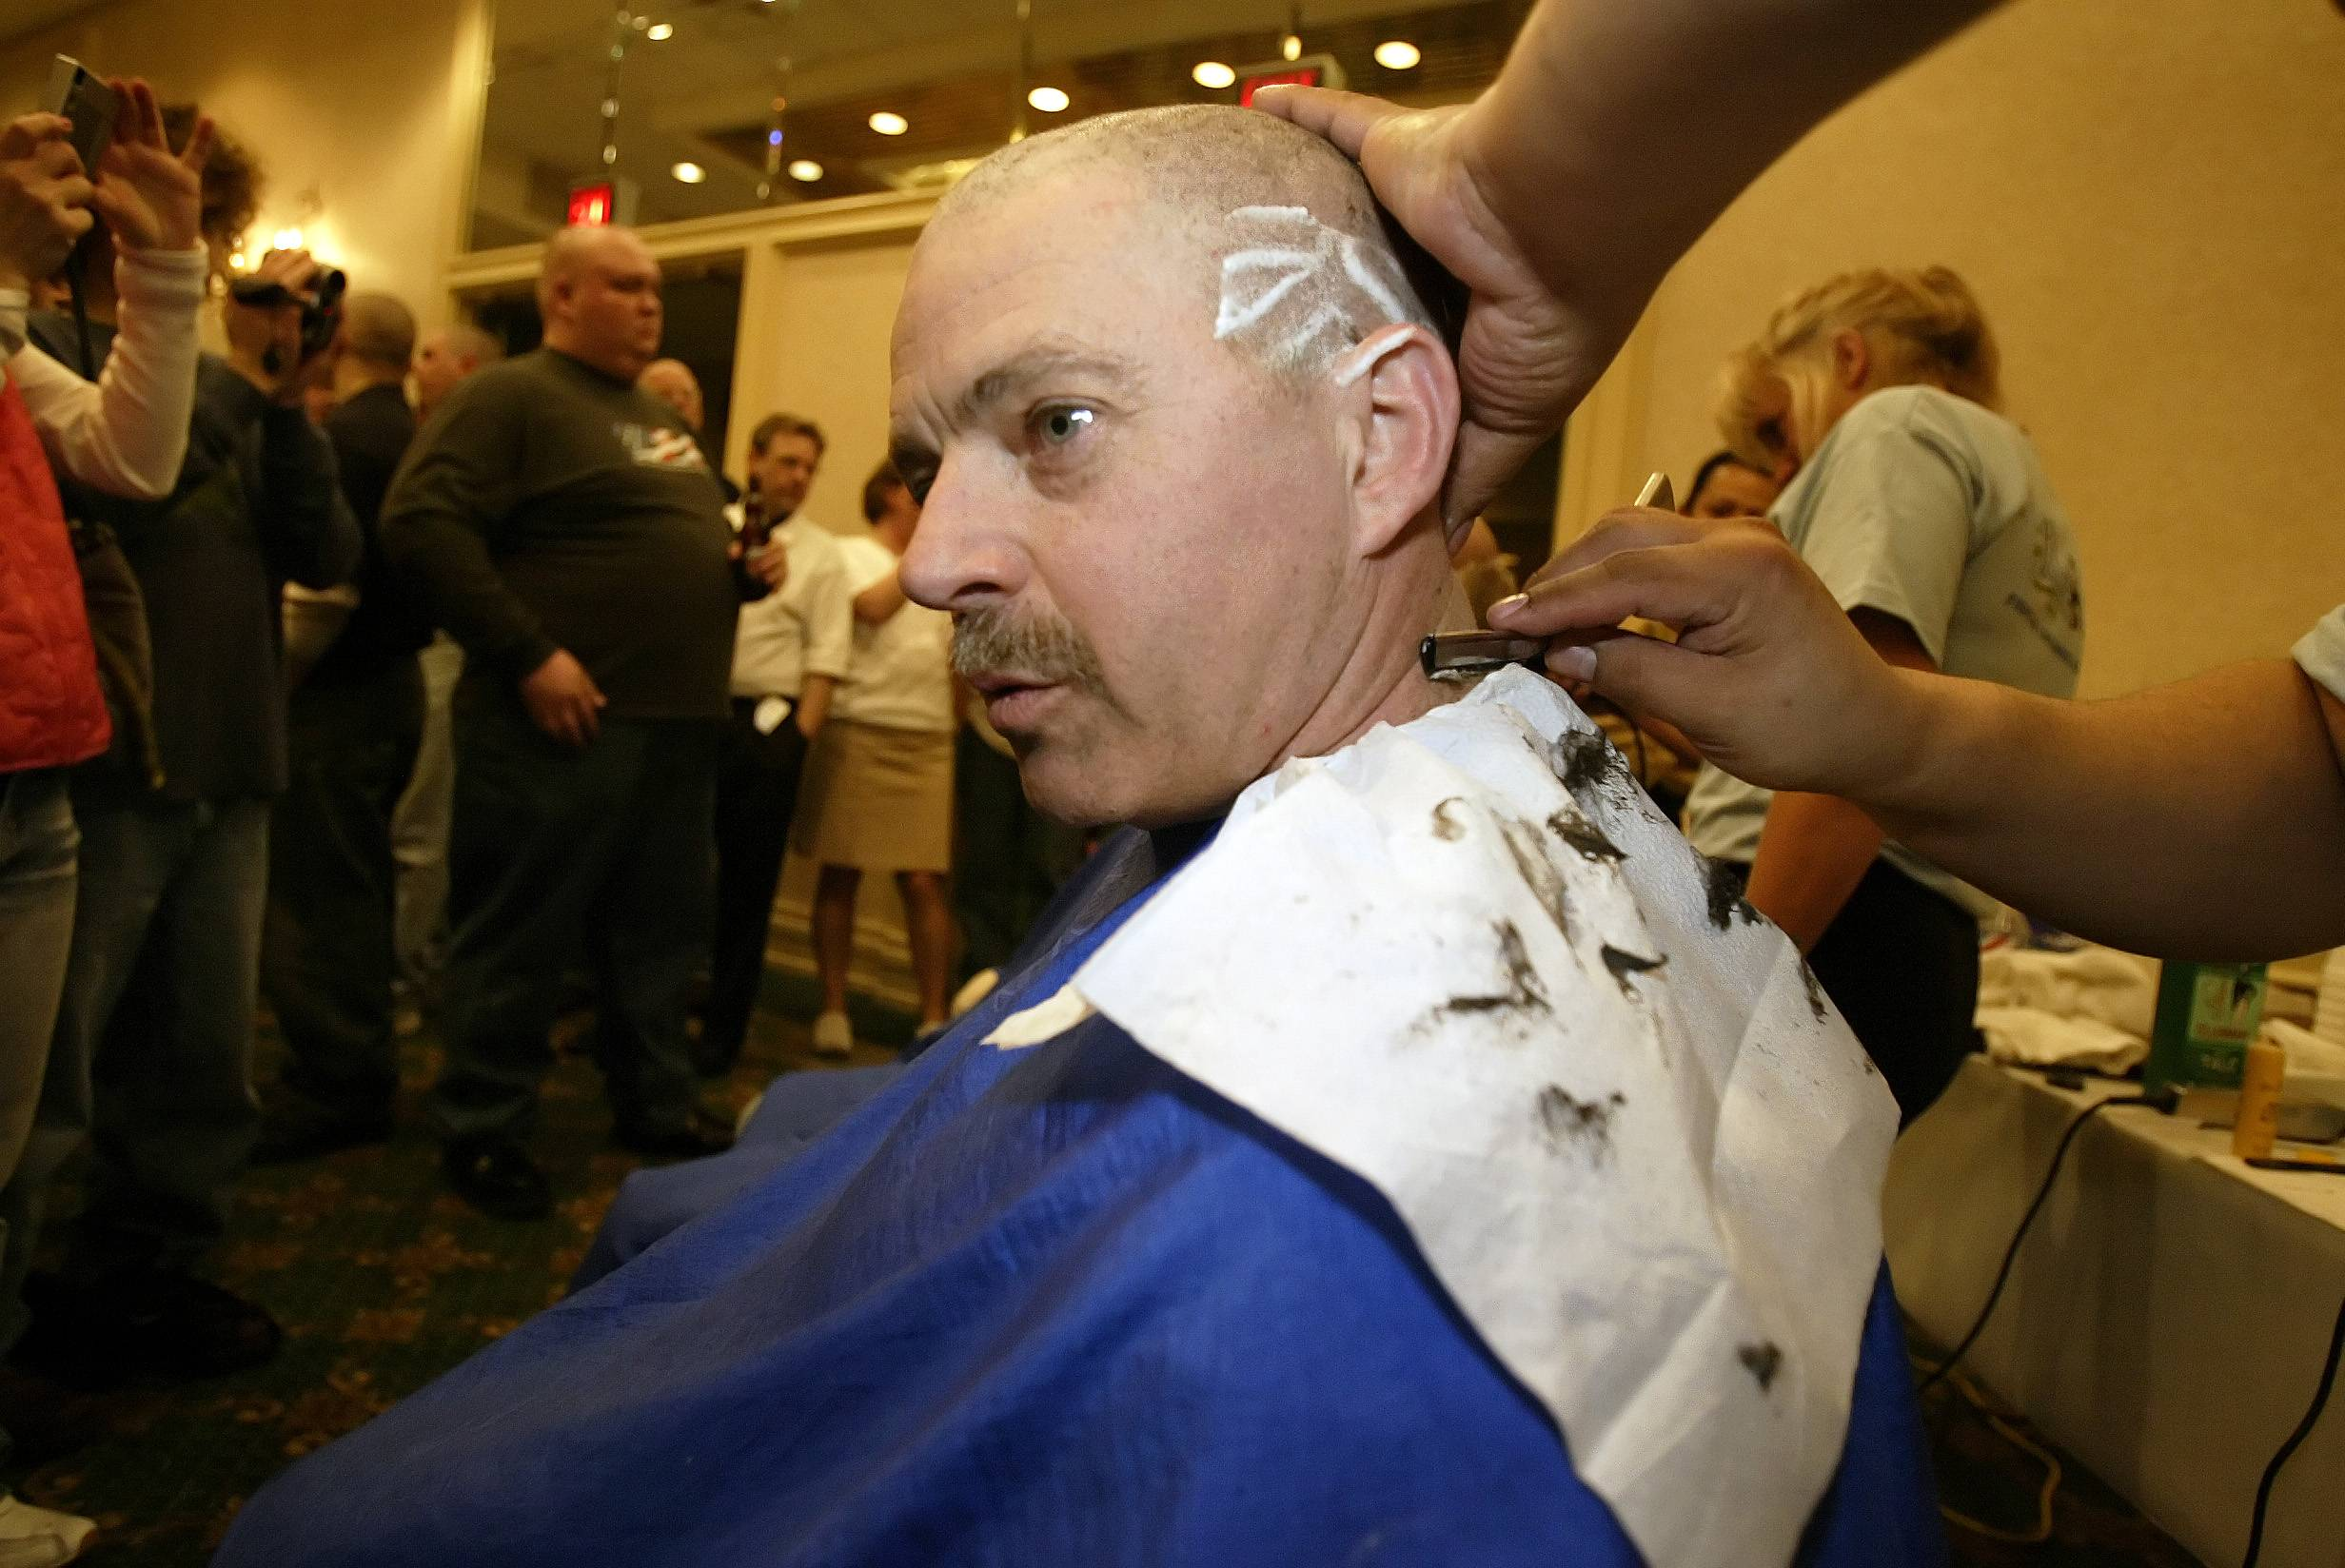 Naperville's police and fire departments began hosting St. Baldrick's head-shaving fundraisers for childhood cancer research nine years ago. At the 10th annual event from 6 to 9 p.m. March 1, organizers expect to reach the $1 million mark in total funds raised.